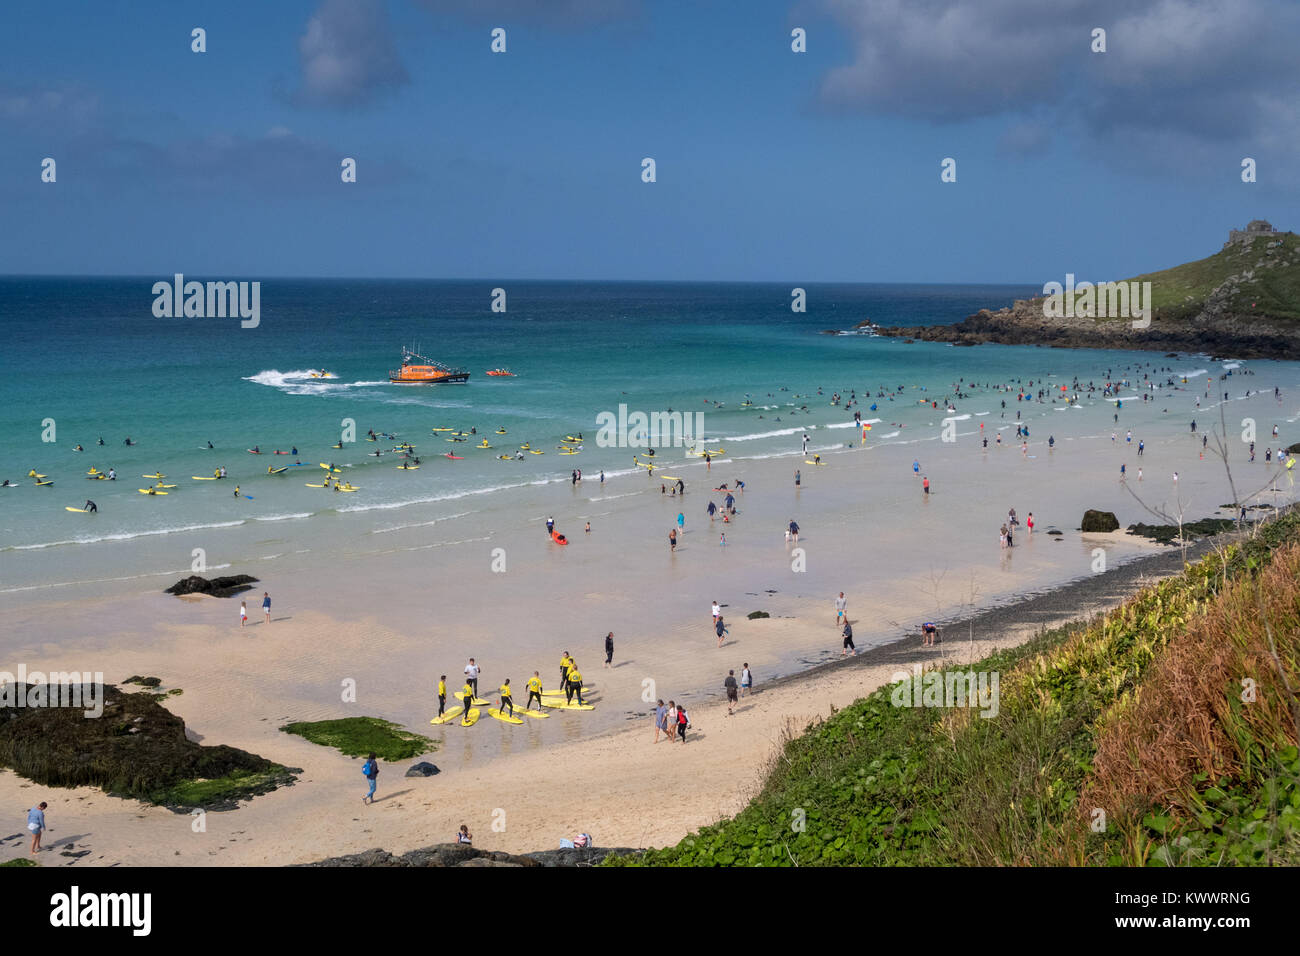 A summers day at St Ives beach in Cornwall. The RNLI lifeboat patrols offshore while surfers and tourists enjoys - Stock Image